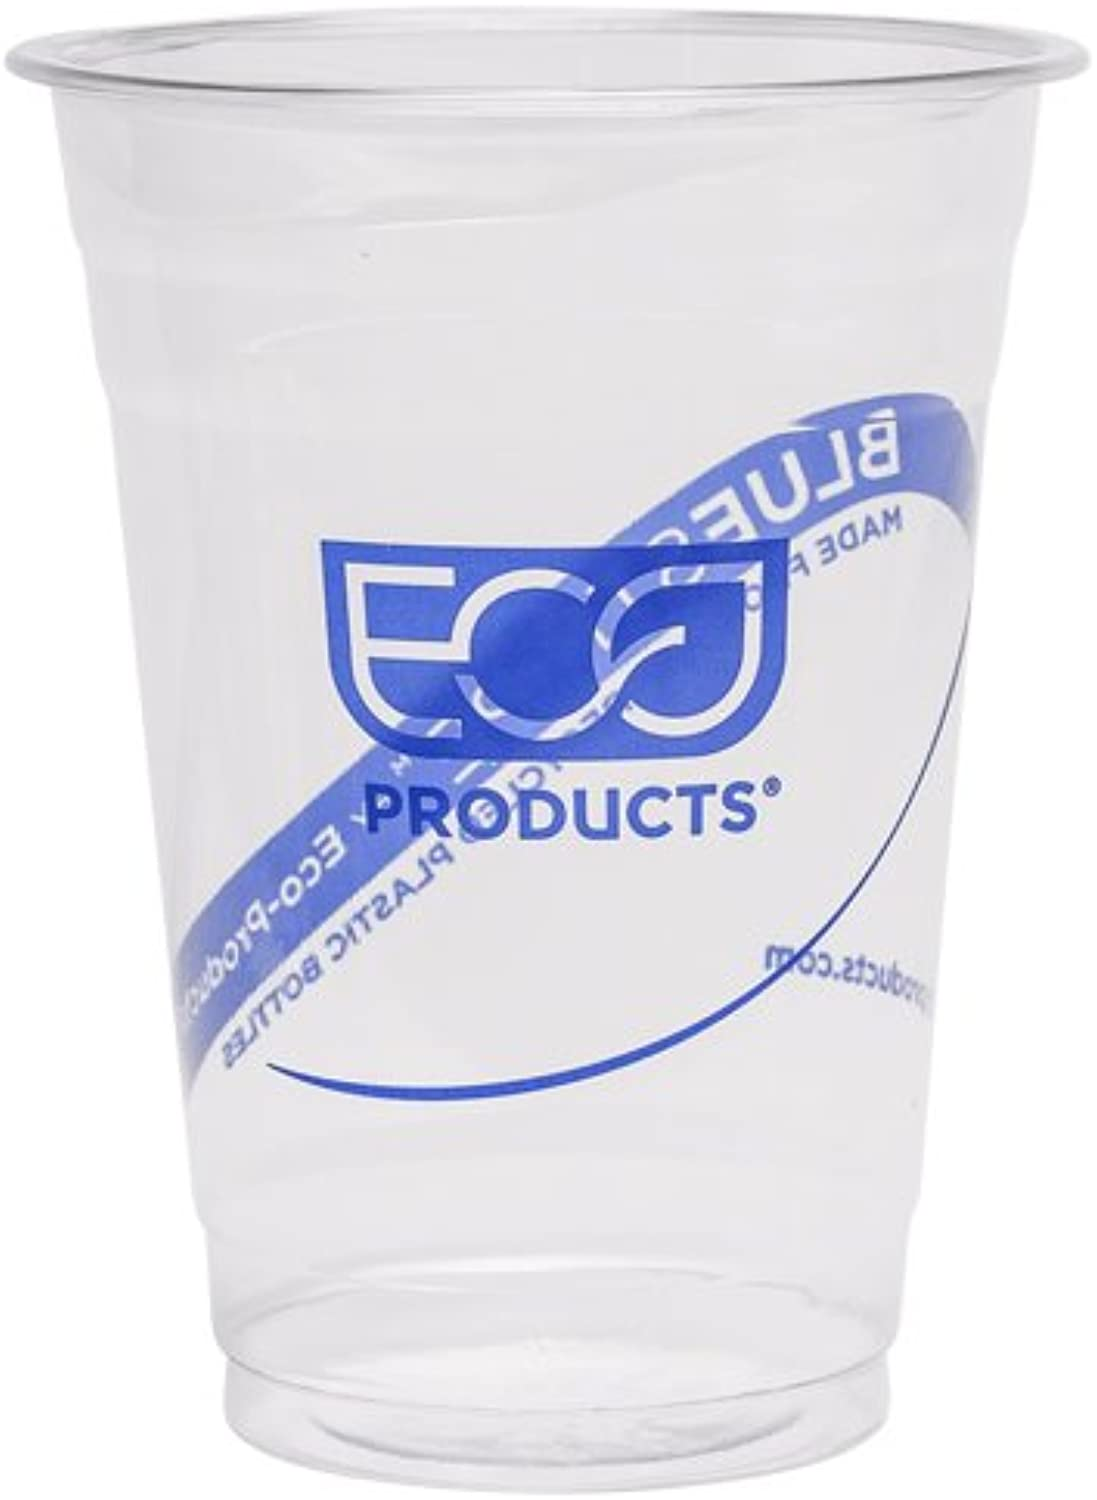 Eco-Products - blueeStripe 25% Recycled Content Cold Cup - 16oz. Cup - EP-CR16 (20 Packs of 50)